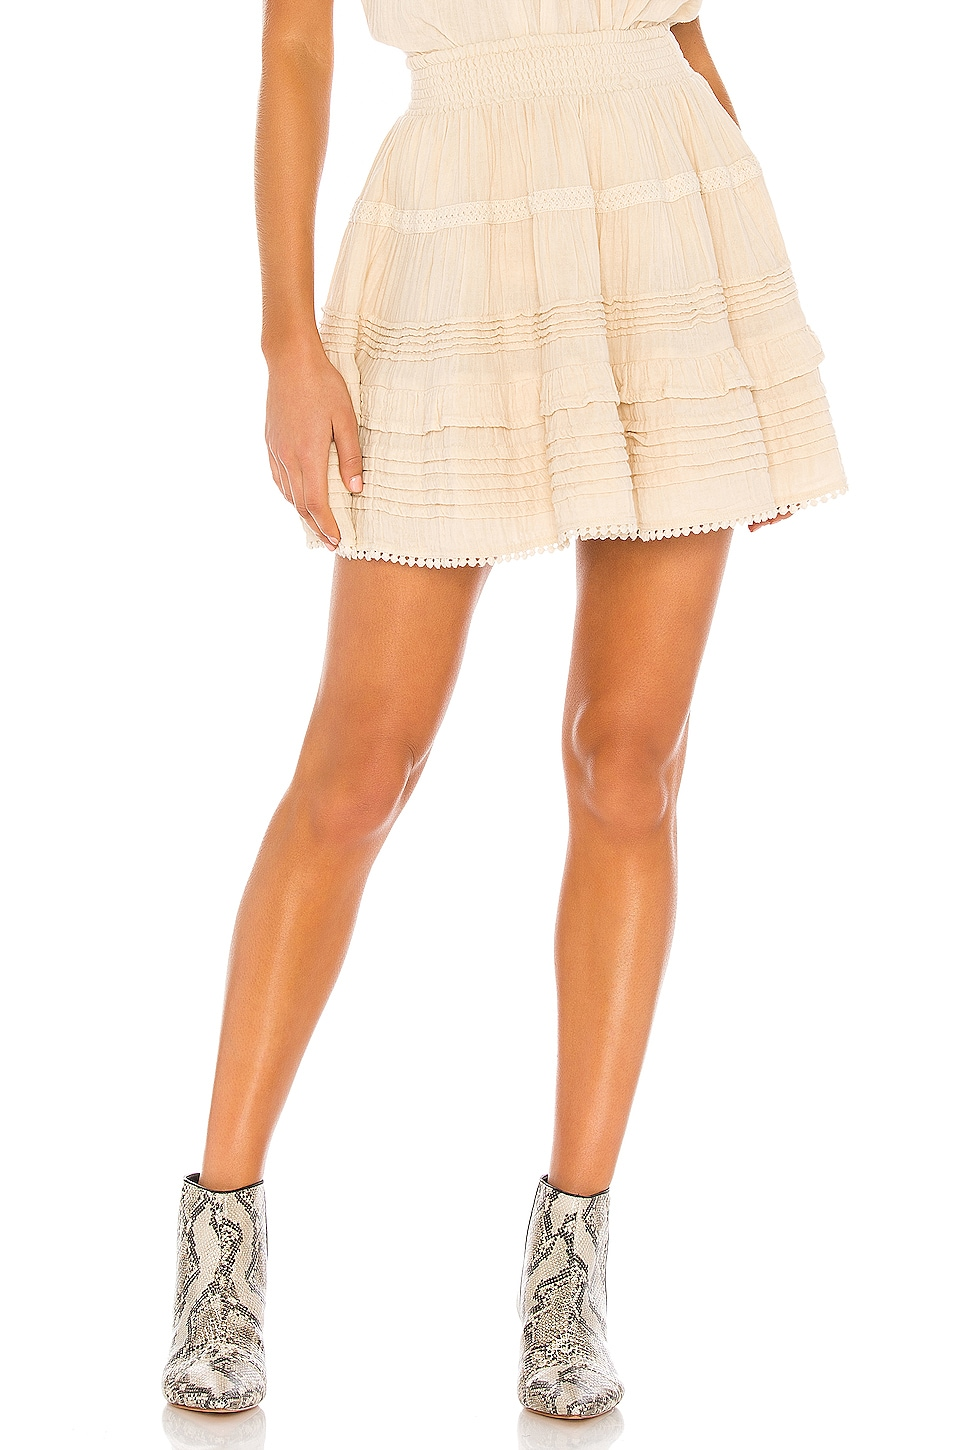 Spell & The Gypsy Collective Hanalei Mini Skirt in Sand